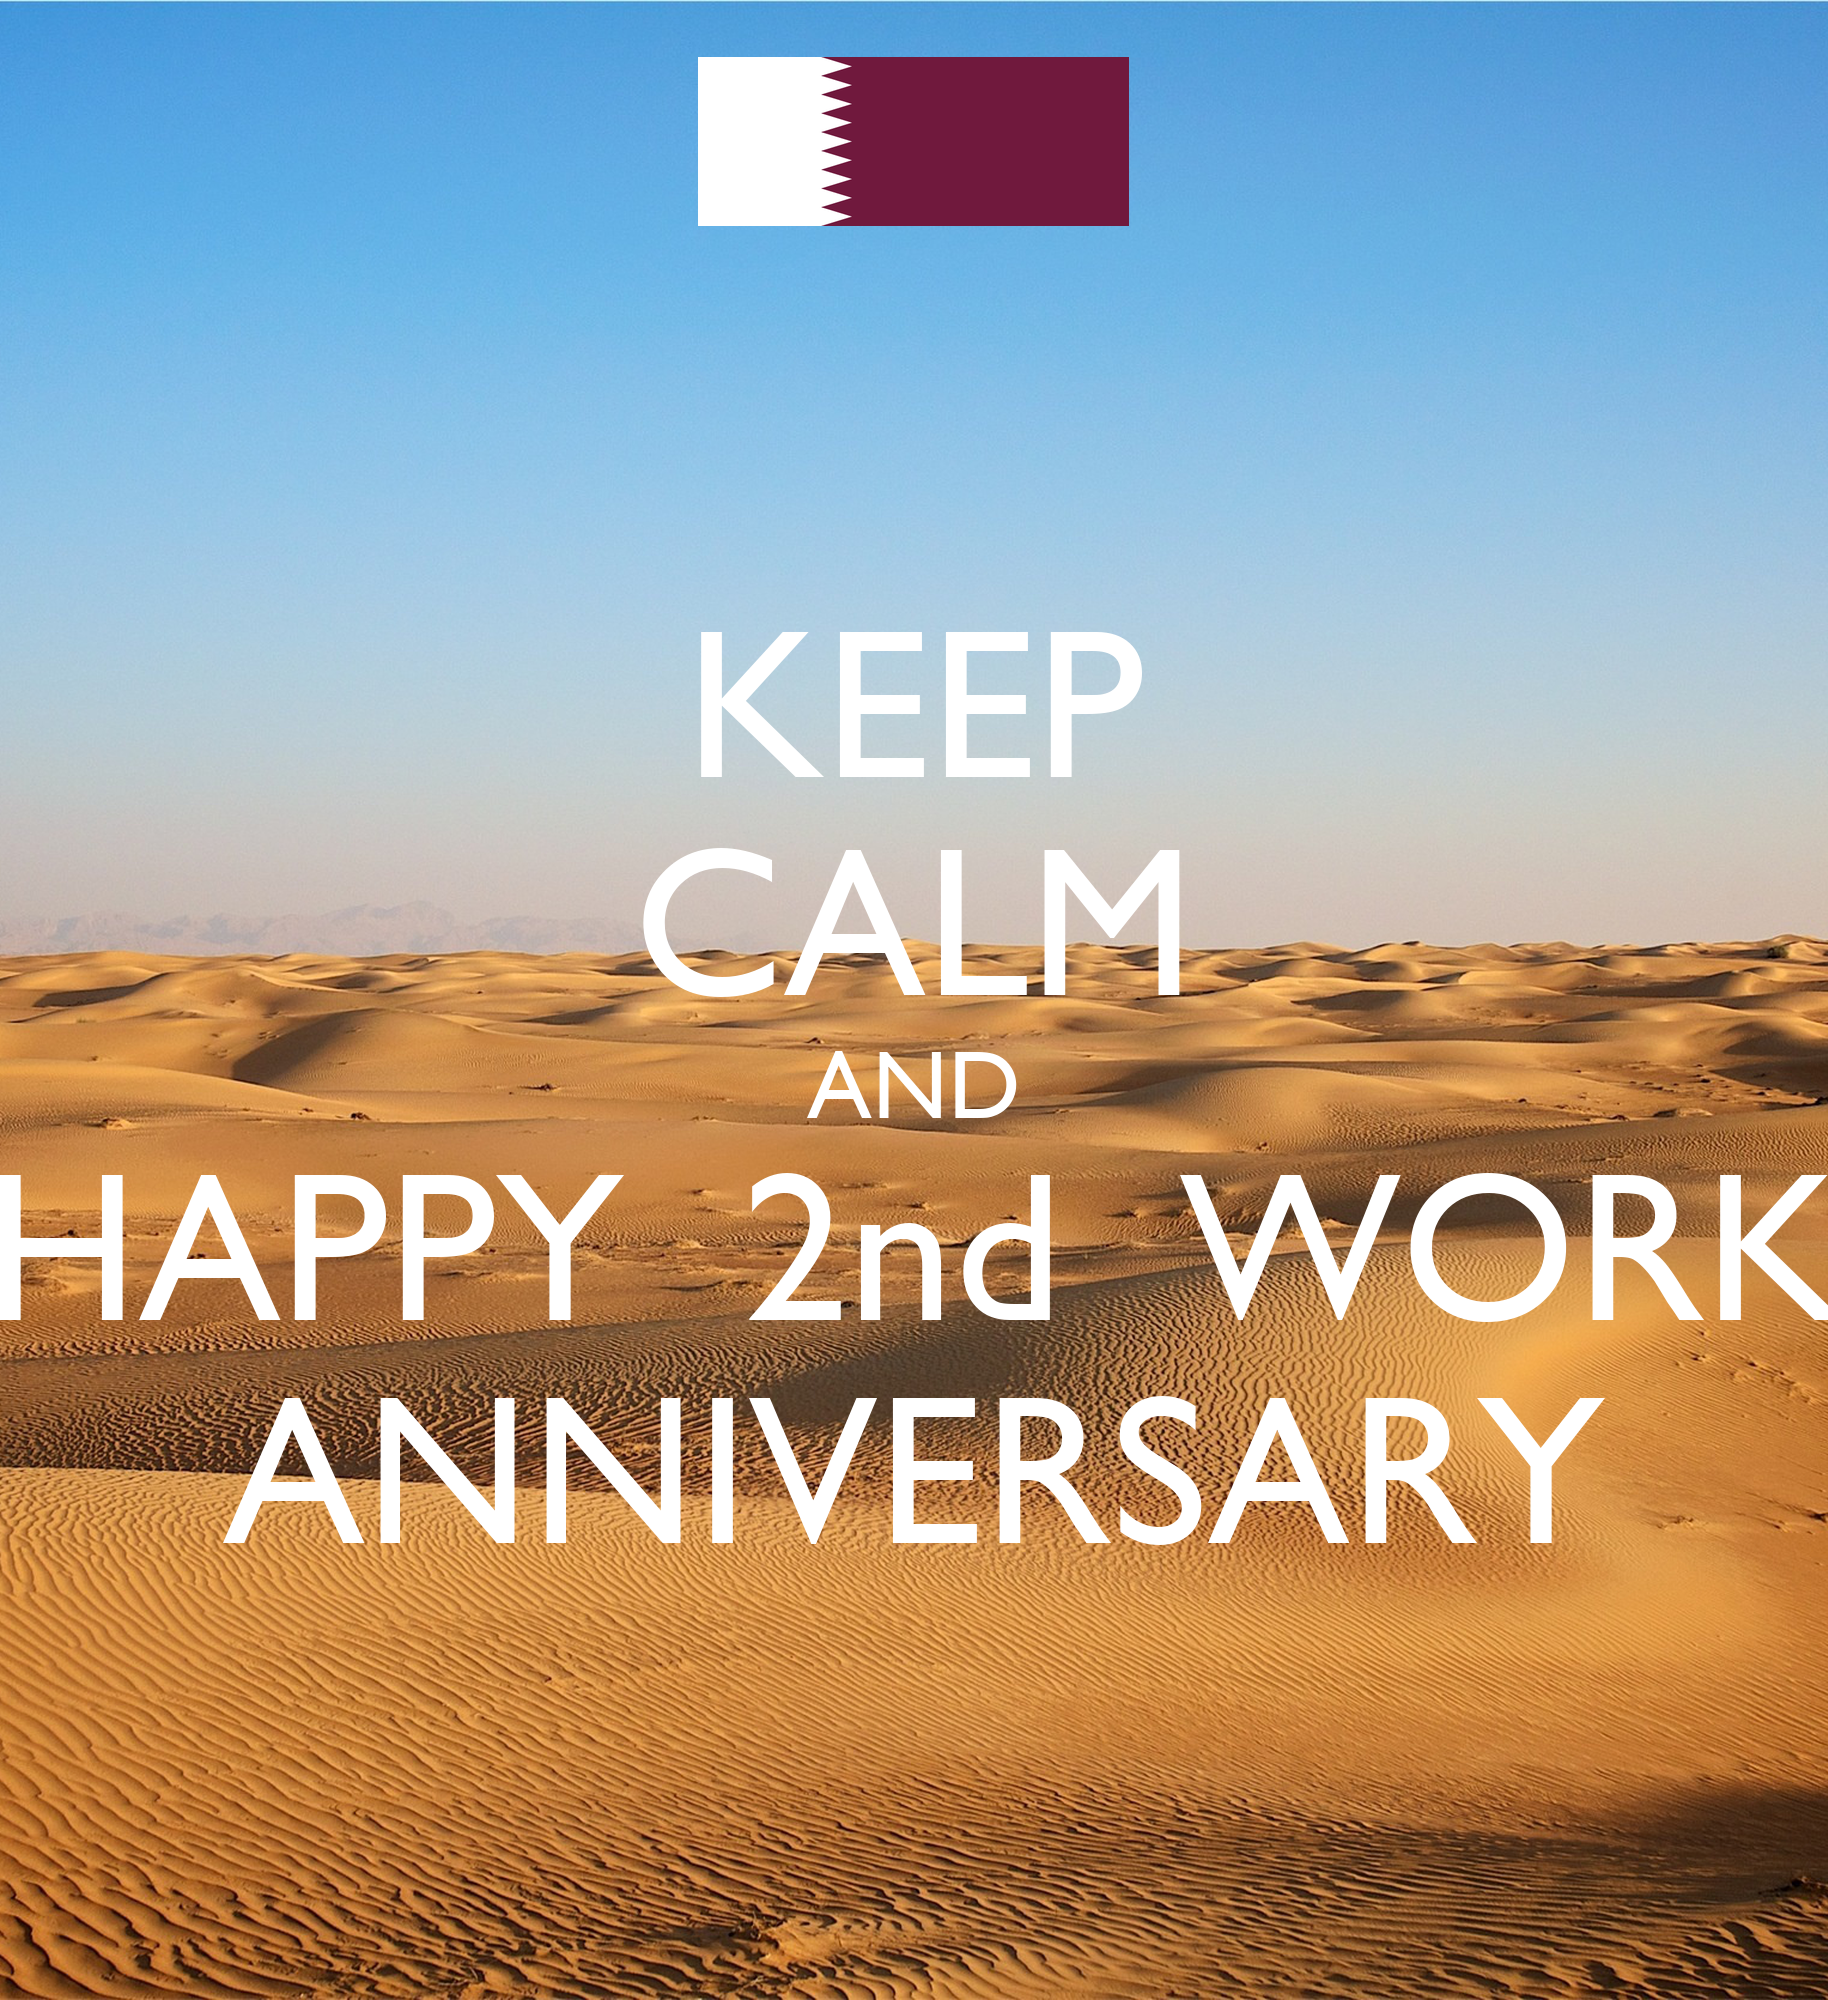 KEEP CALM AND HAPPY 2nd WORK ANNIVERSARY Poster